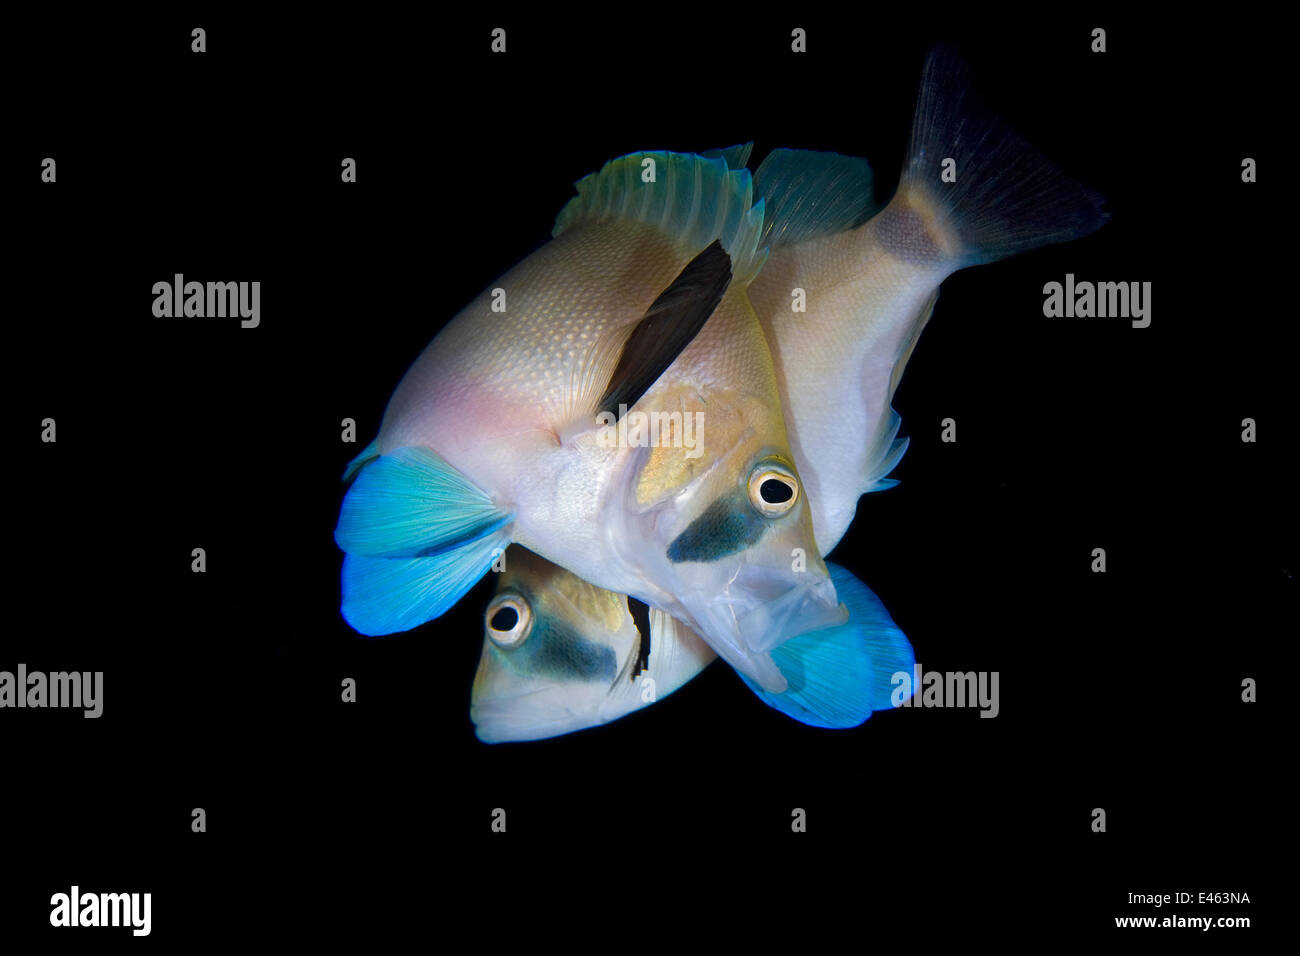 Butter hamlet (Hypoplectrus unicolor) pair spawning at dusk, George Town, Grand Cayman, Cayman Islands, British - Stock Image